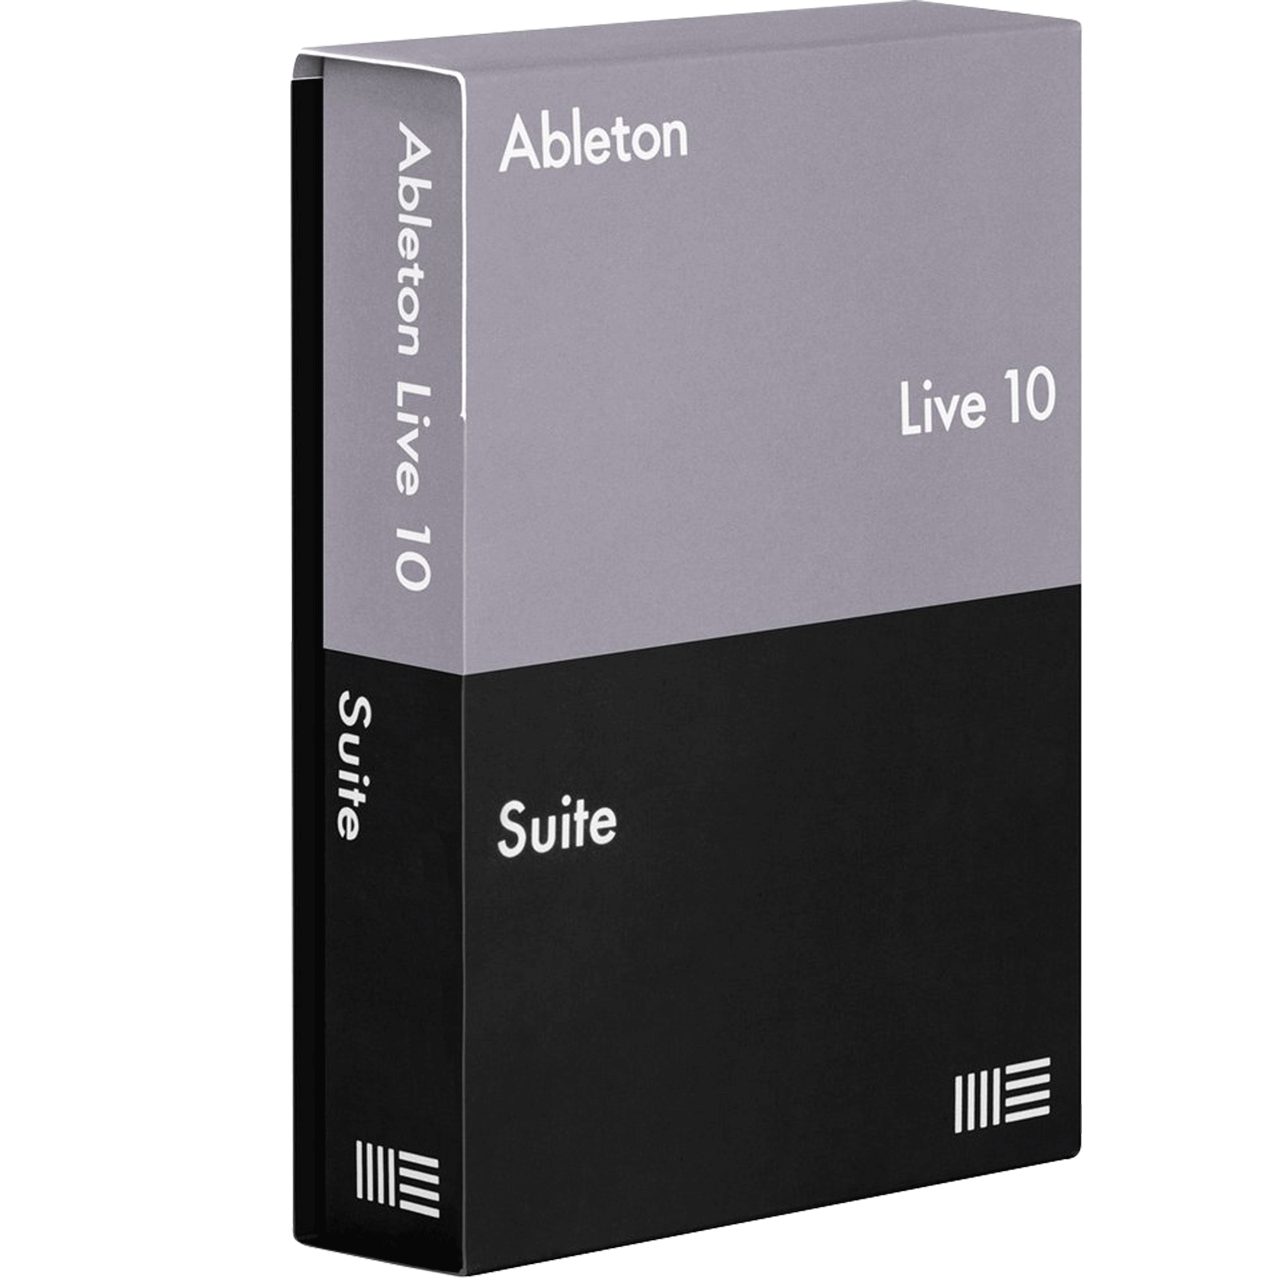 Ableton Live 10 free with SEM